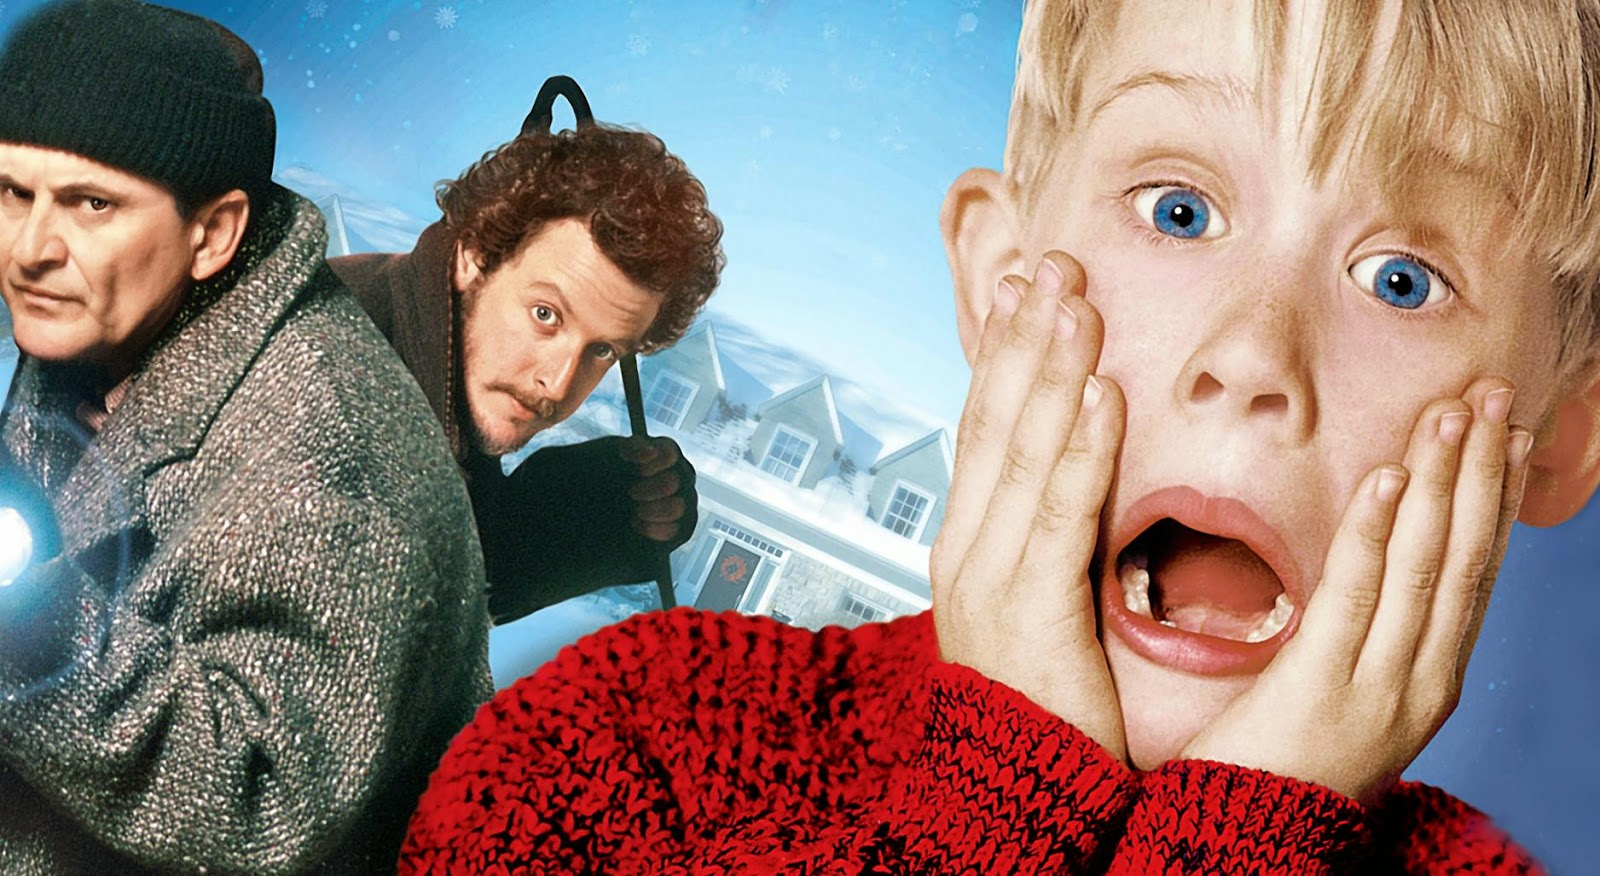 Home Alone, Horror Film Trailer, Horror Movie, Best Christmas Movies to Watch, Chritsmas Film,